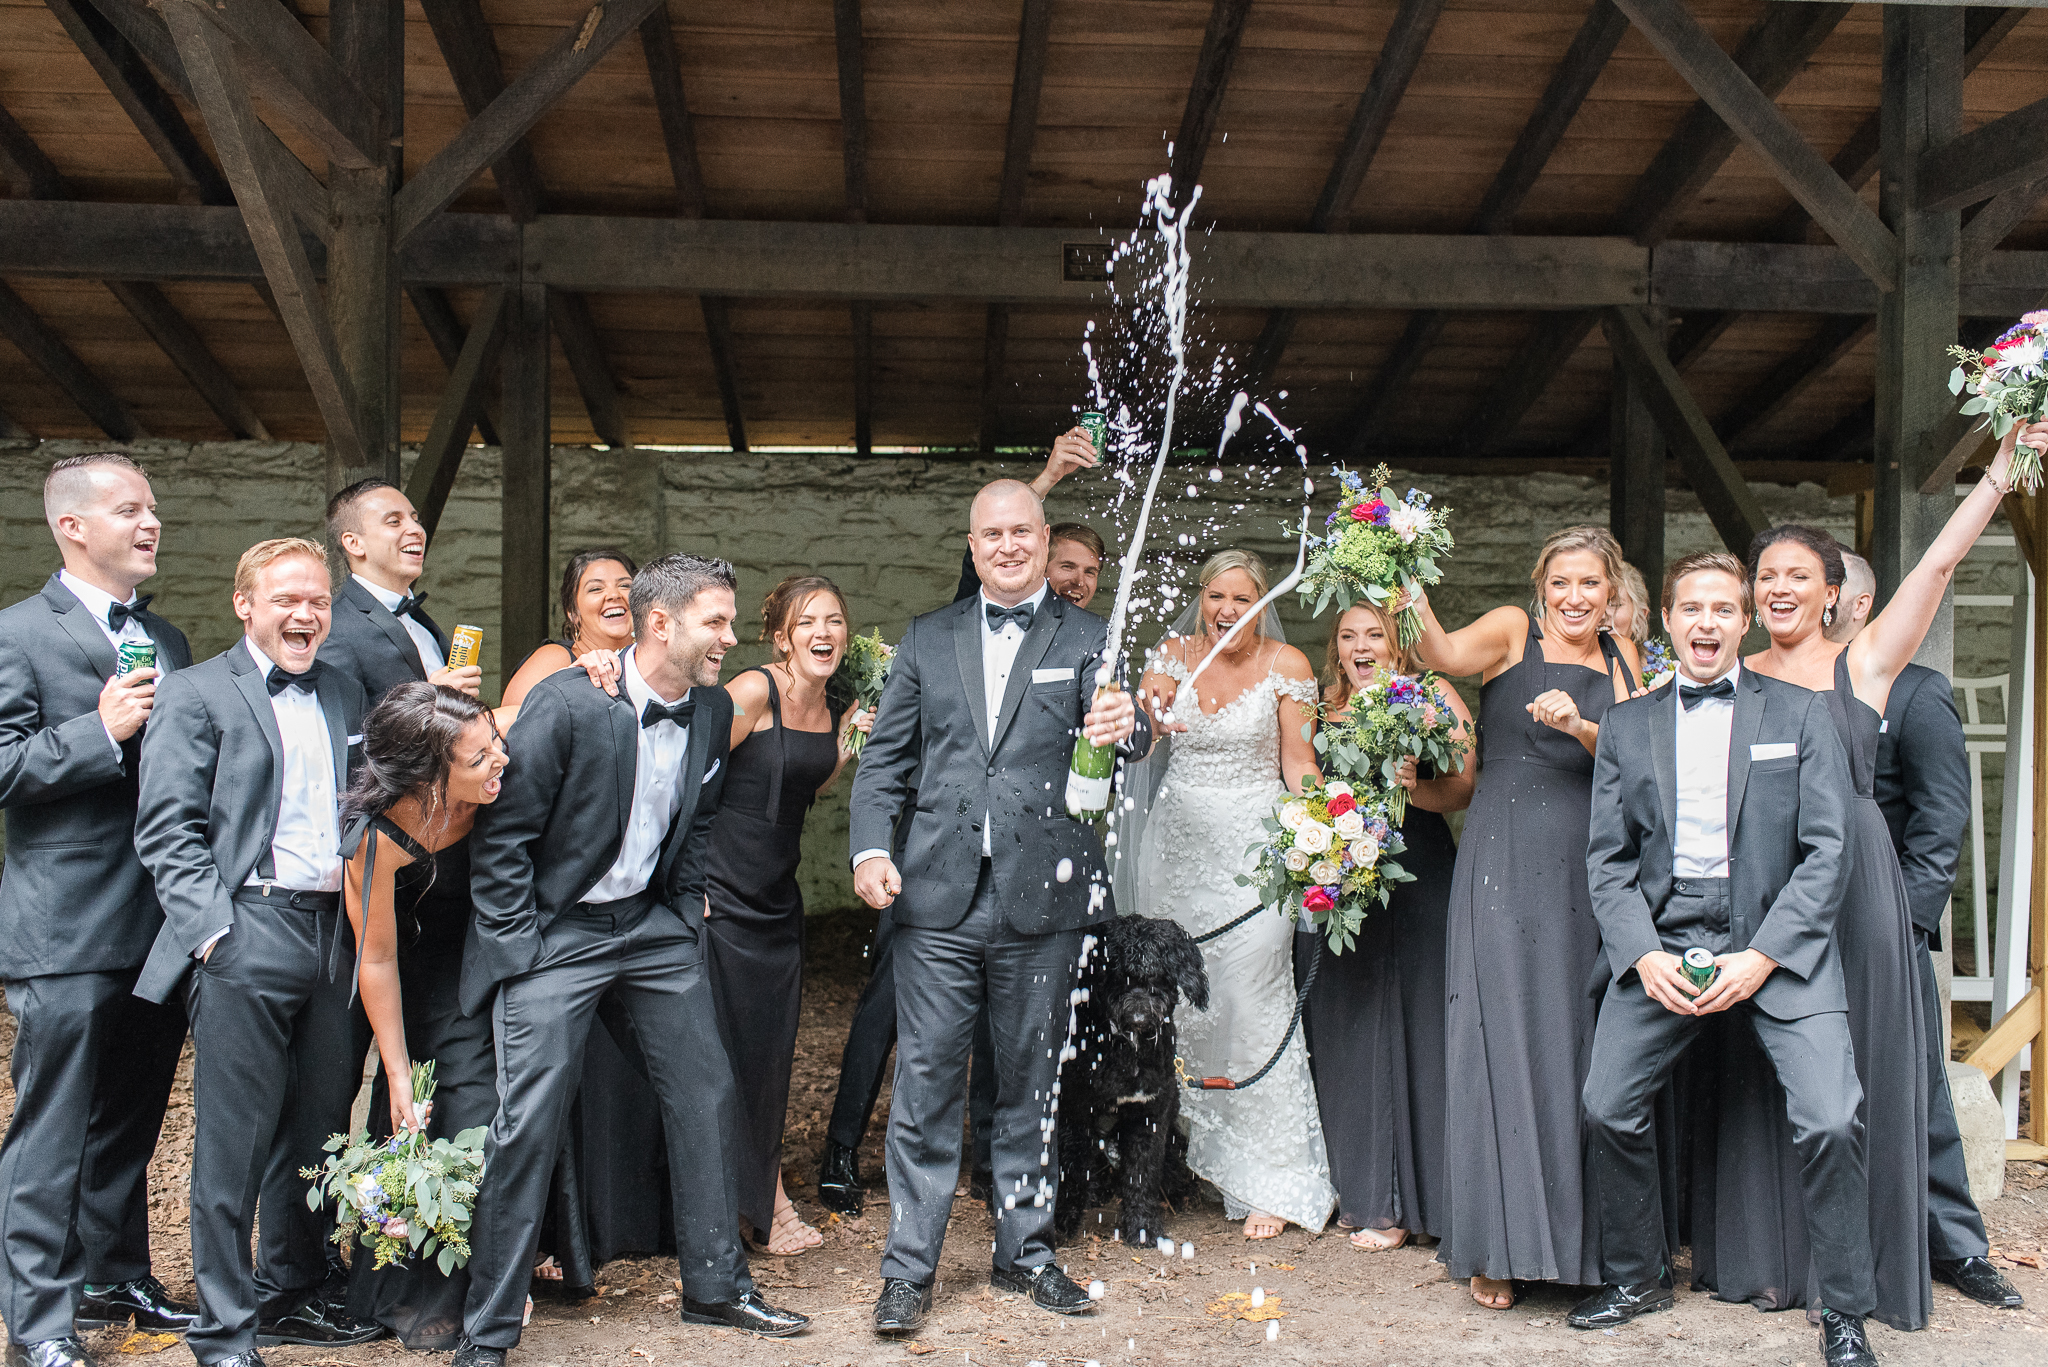 09_06_2019_Dana_Slifer_Photography_Casey_and_Adam_Wedding_15.jpg